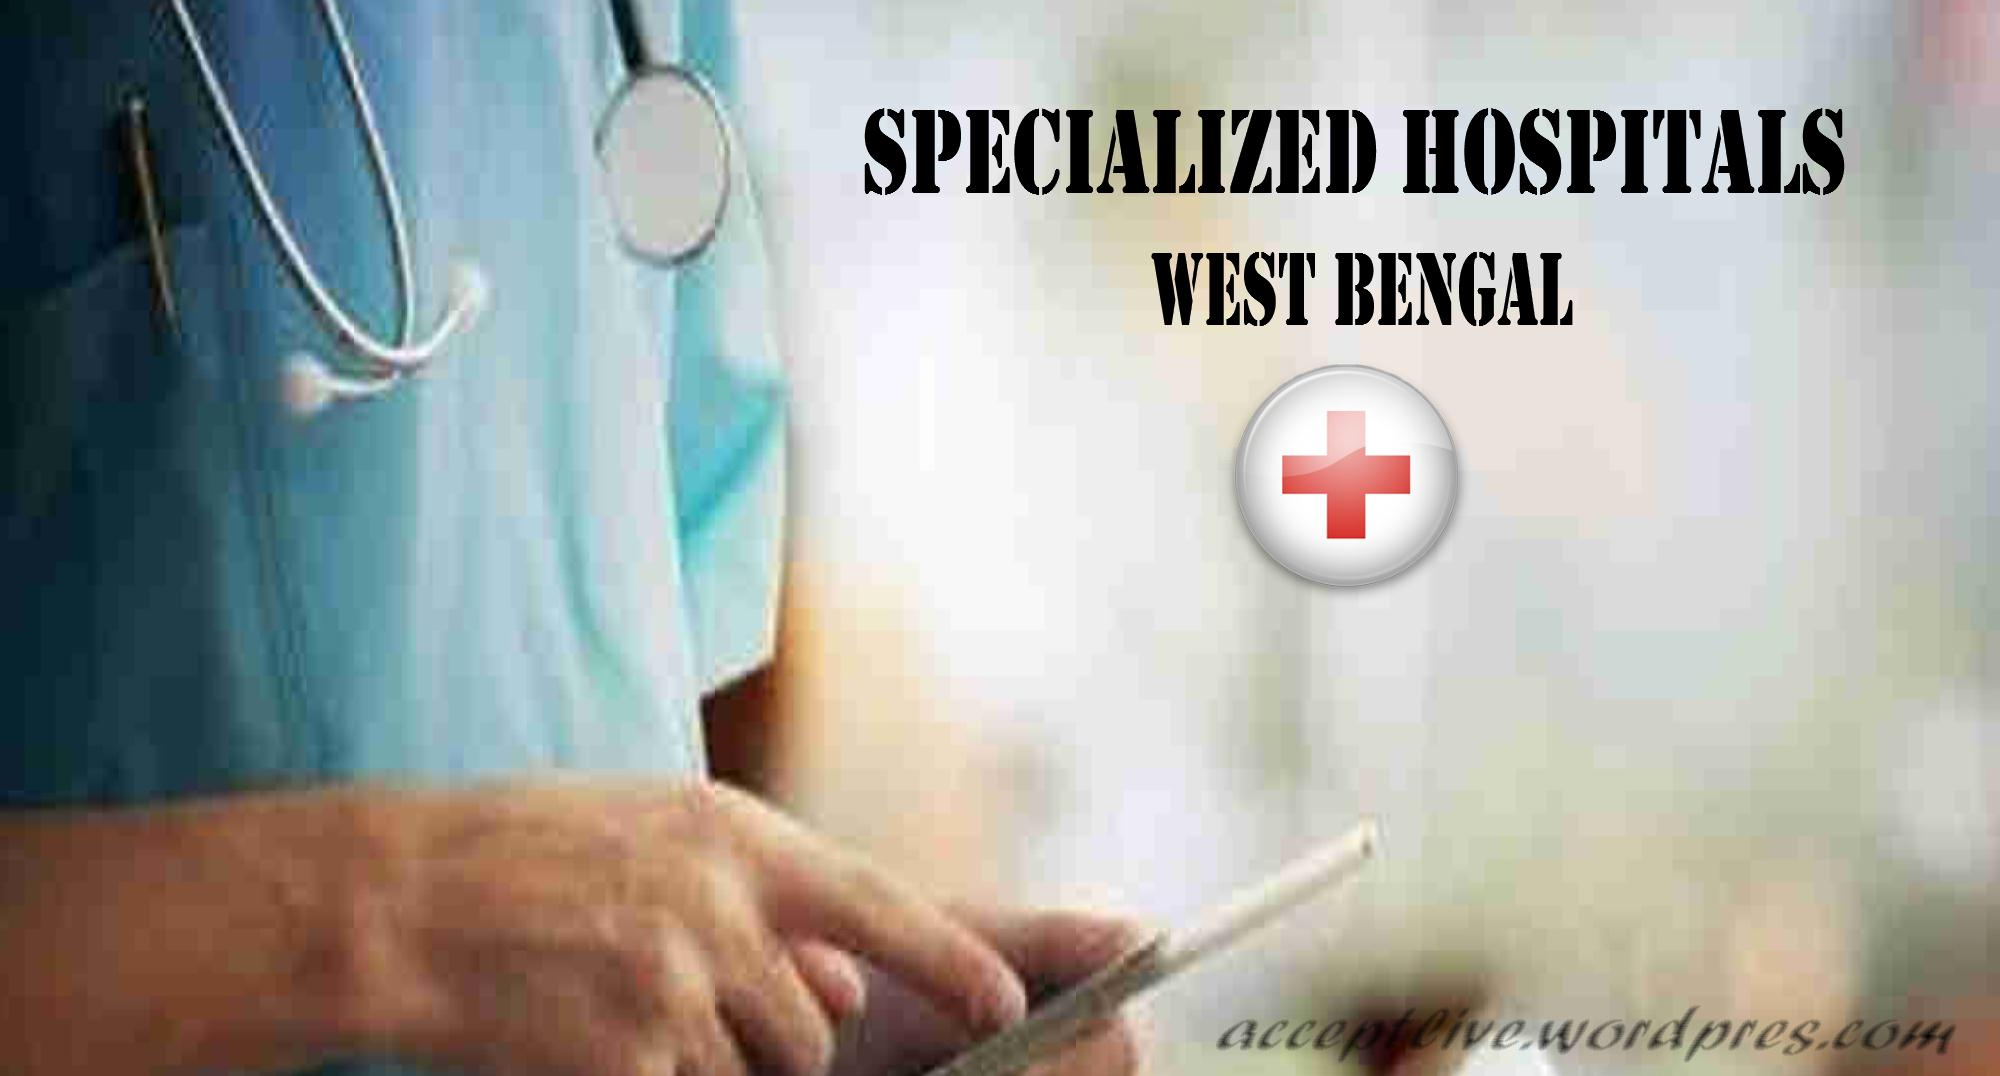 Specialized hospitals In West Bengal